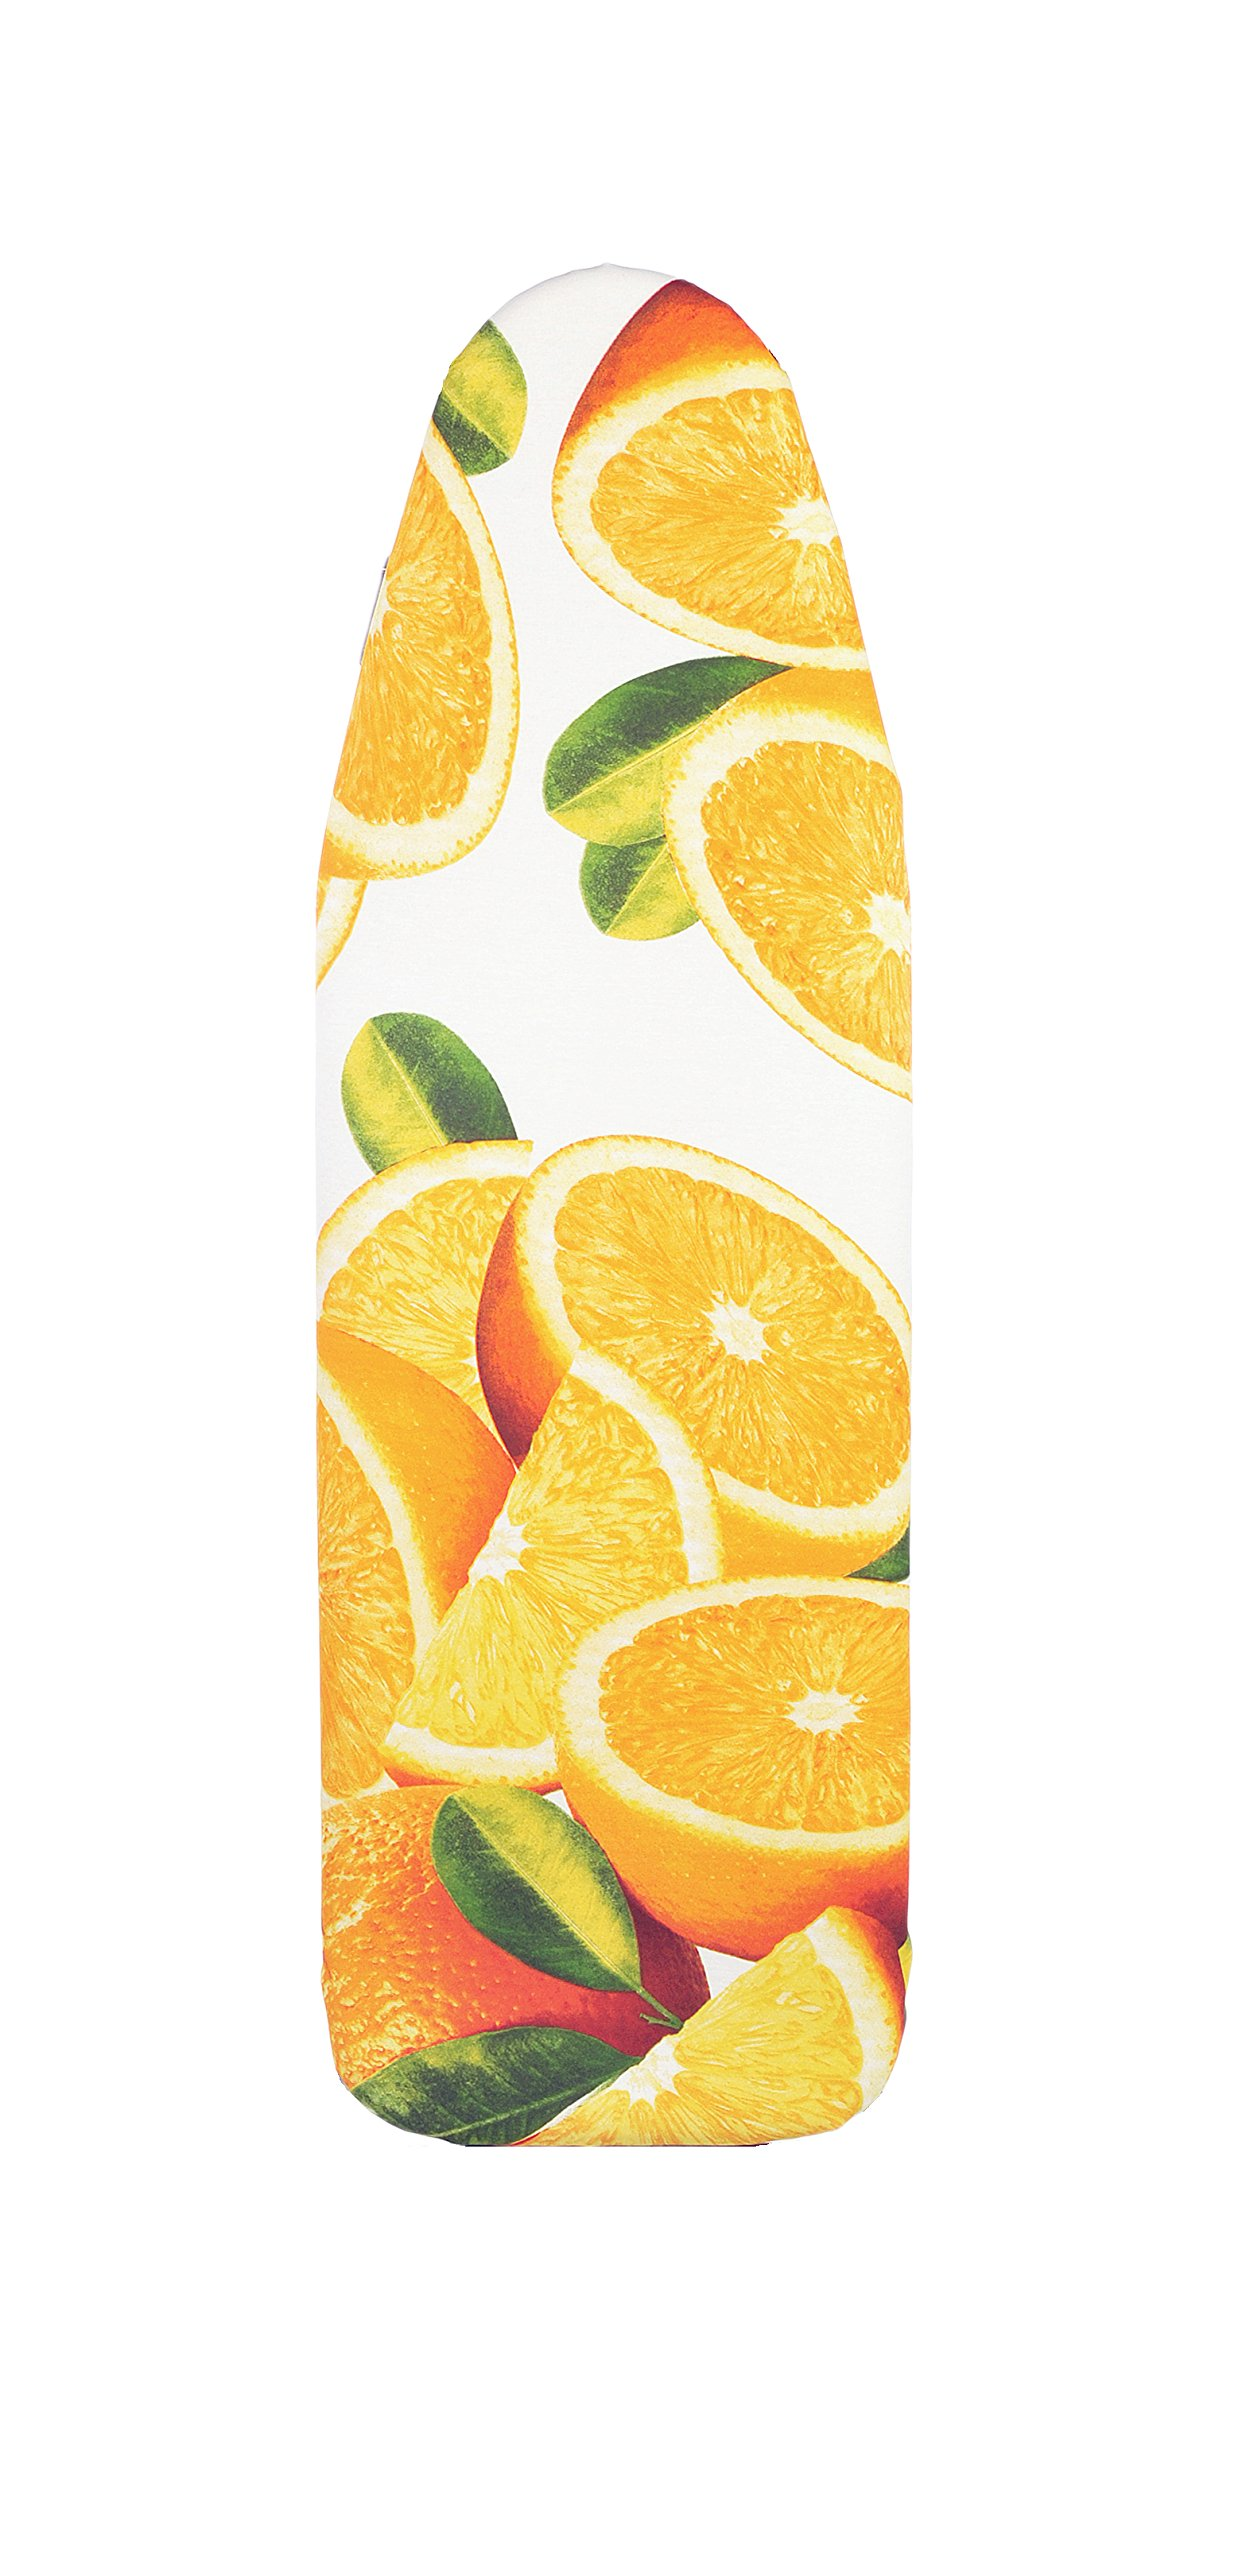 VieveMar Padded Ironing Board Cover, EASY FIT with handy DrawString, NO DYE TRANSFER! UNIQUE FRUITY DESIGN, Heat Reflective and Scorch Resistant Premium Cotton, Fits Boards up to 15'' x 54'' (Orange)